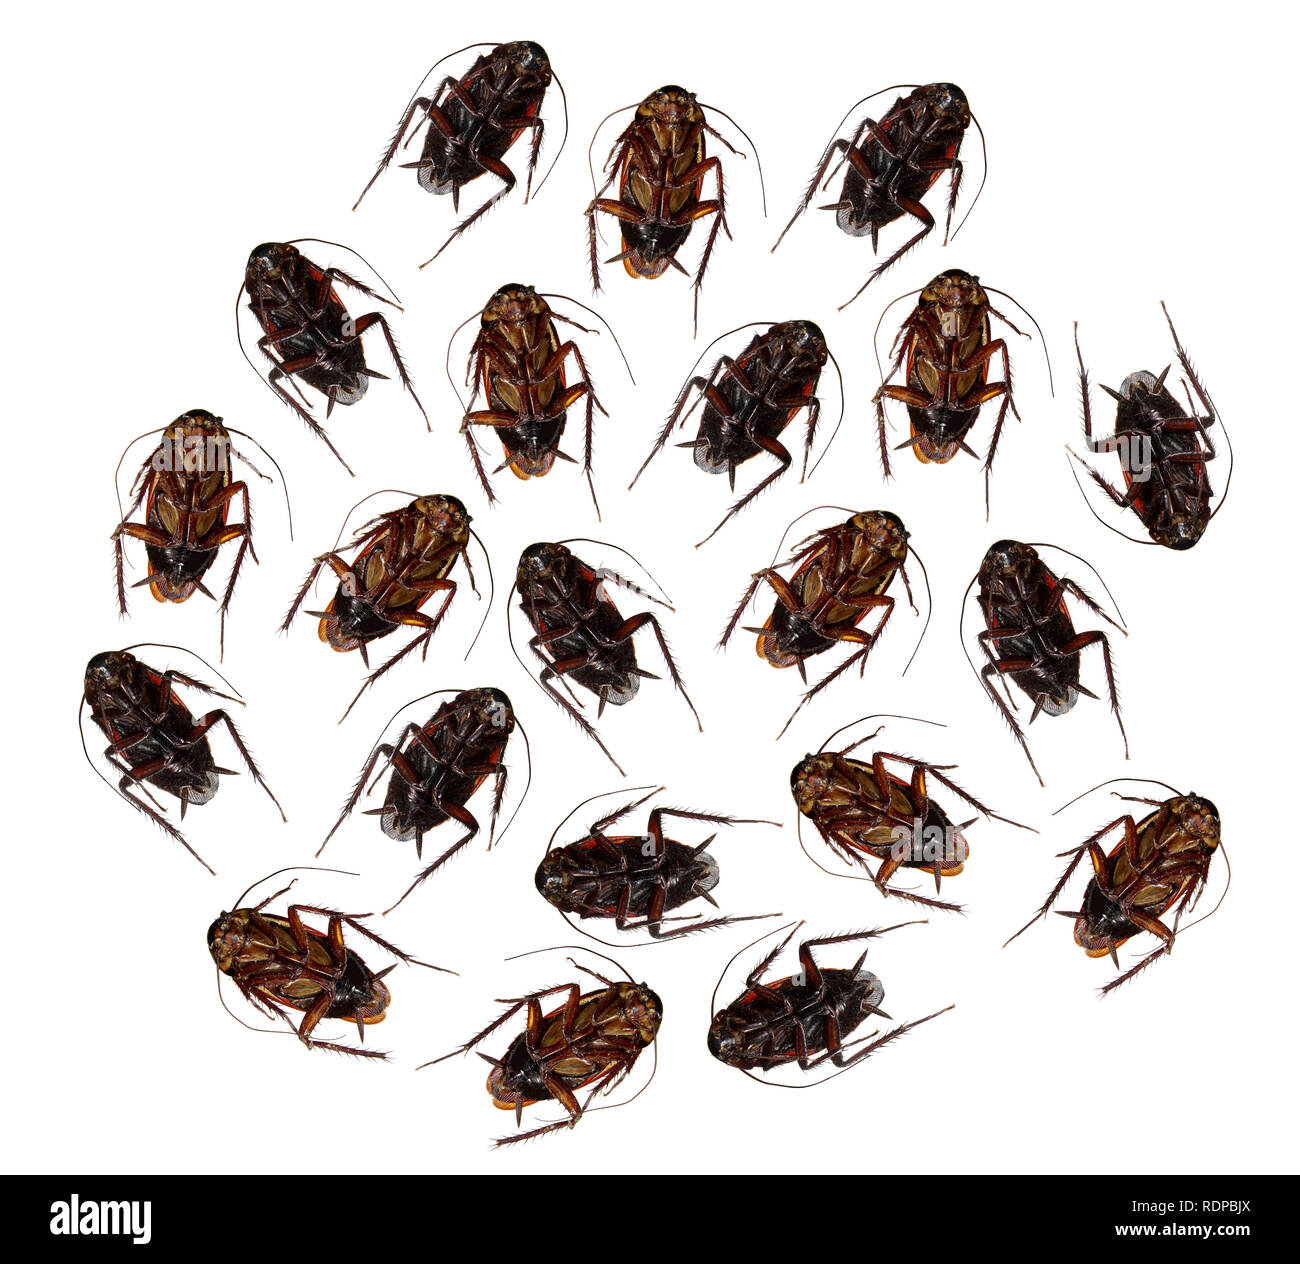 Dead Cockroaches on White Background - Stock Image